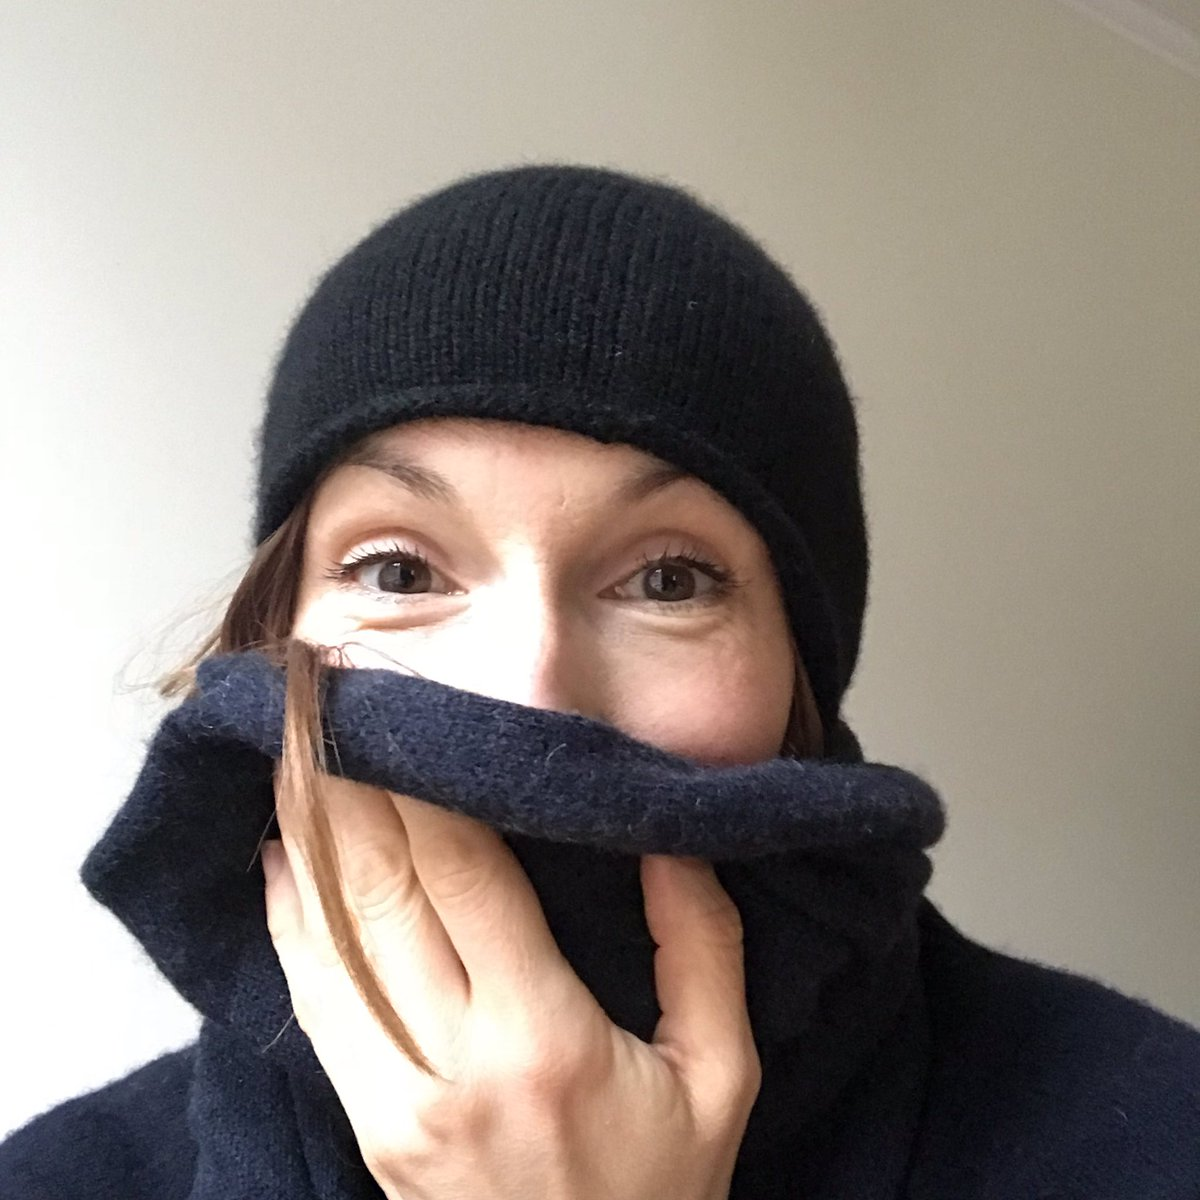 Put on your beanie 2.Text BEAN27 £2 to 70070 3. Share your beanie selfies  with    BeanstalkBeanieDay and  GivingTuesdaypic.twitter.com 5FDC65Pjms 09d78b8752e